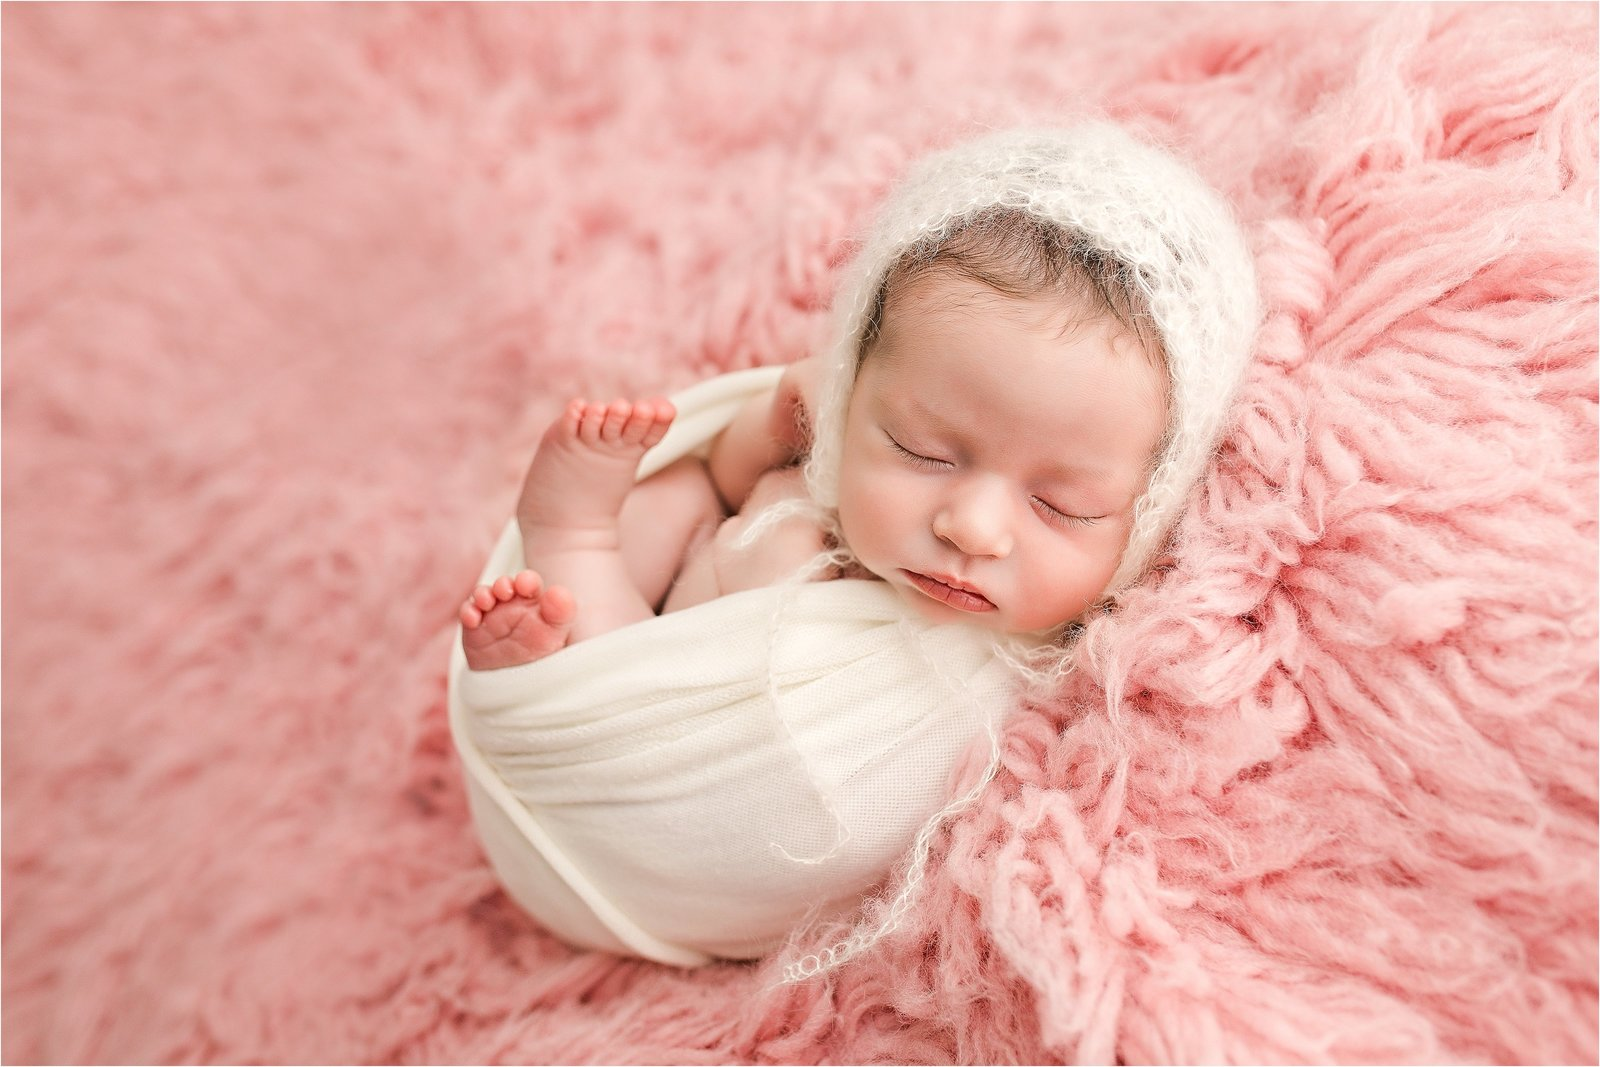 nj-newborn-photography-idalia-025